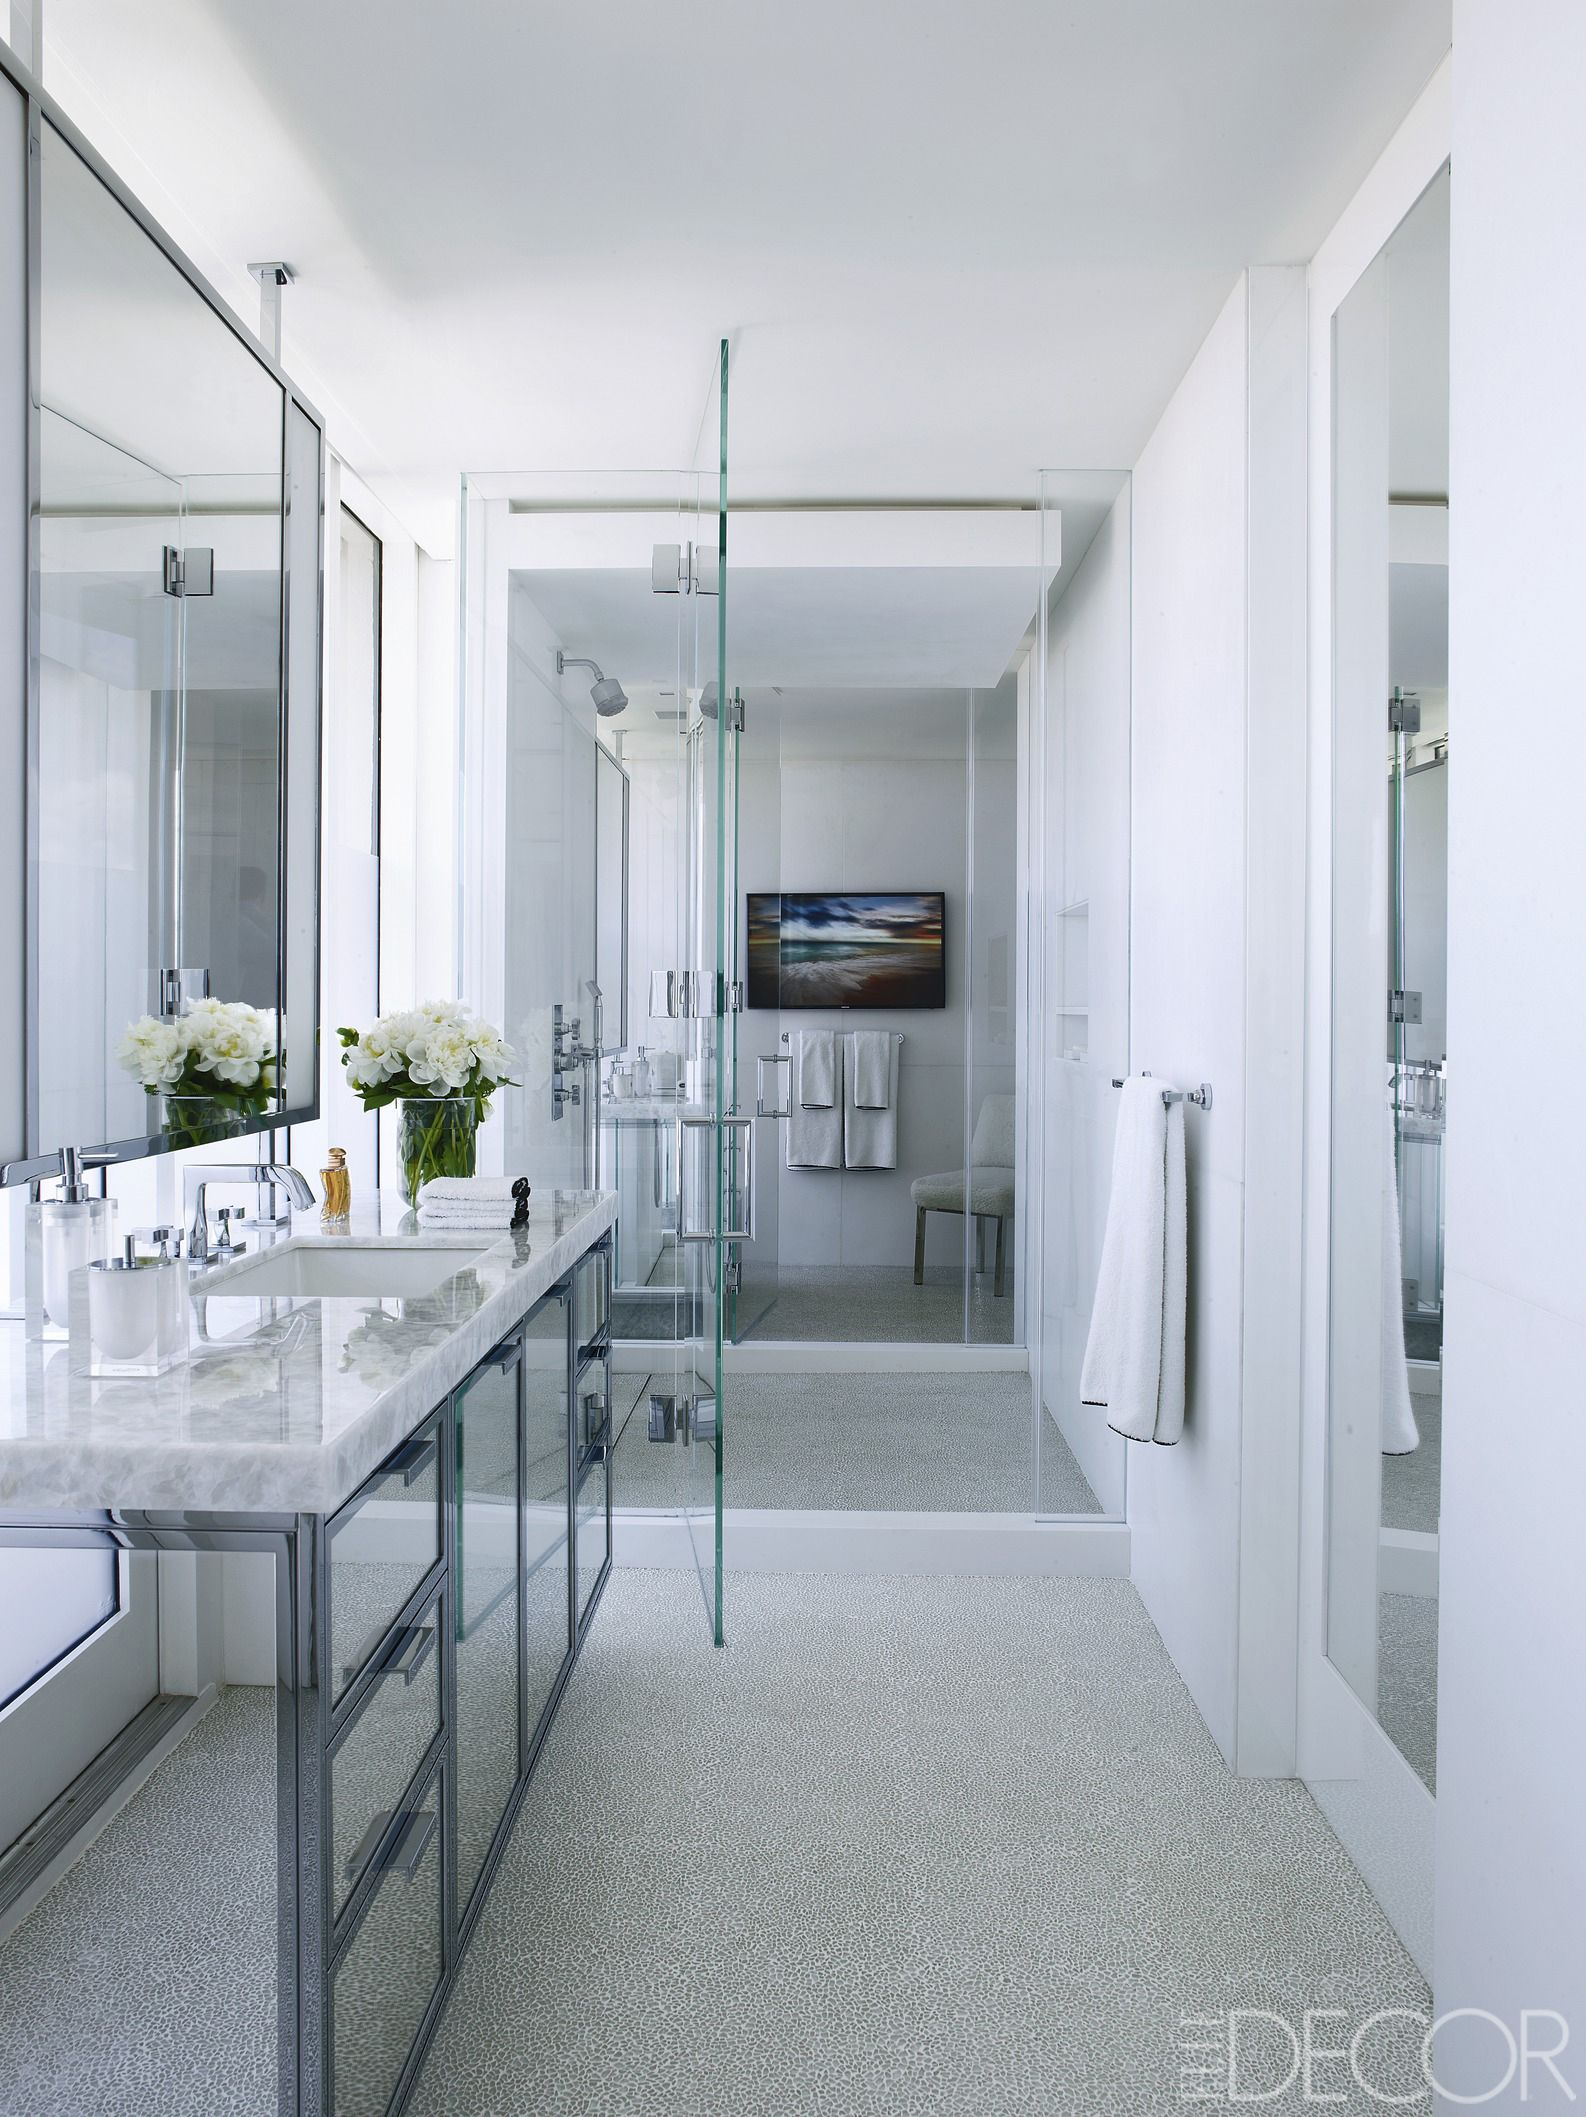 25 Best Modern Bathroom Ideas - Luxury Bathrooms